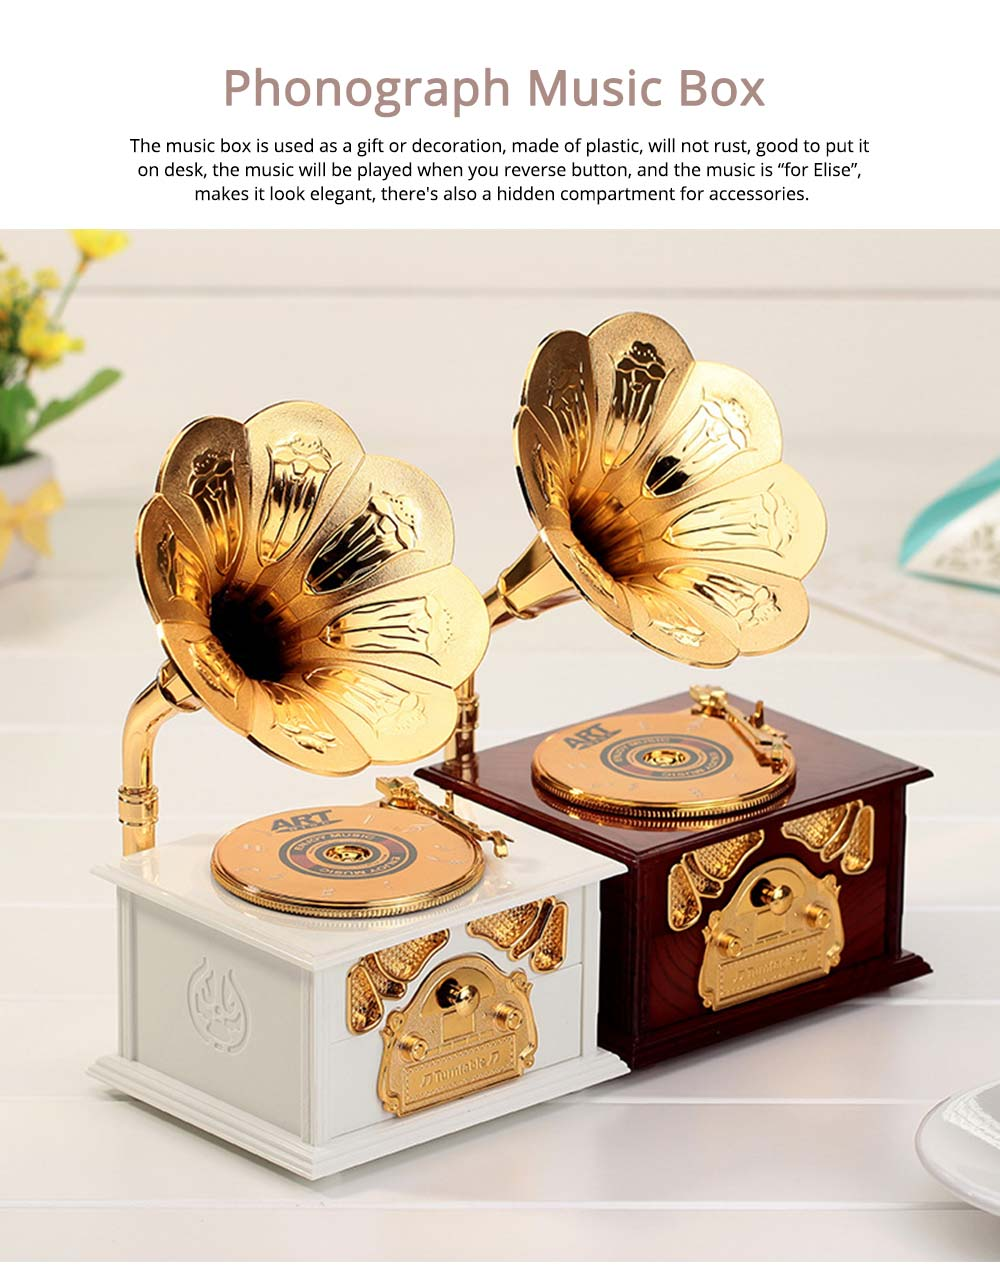 Phonograph Music Box for Home, Office Decoration, Vintage Style Gift Phonograph Music Case 0